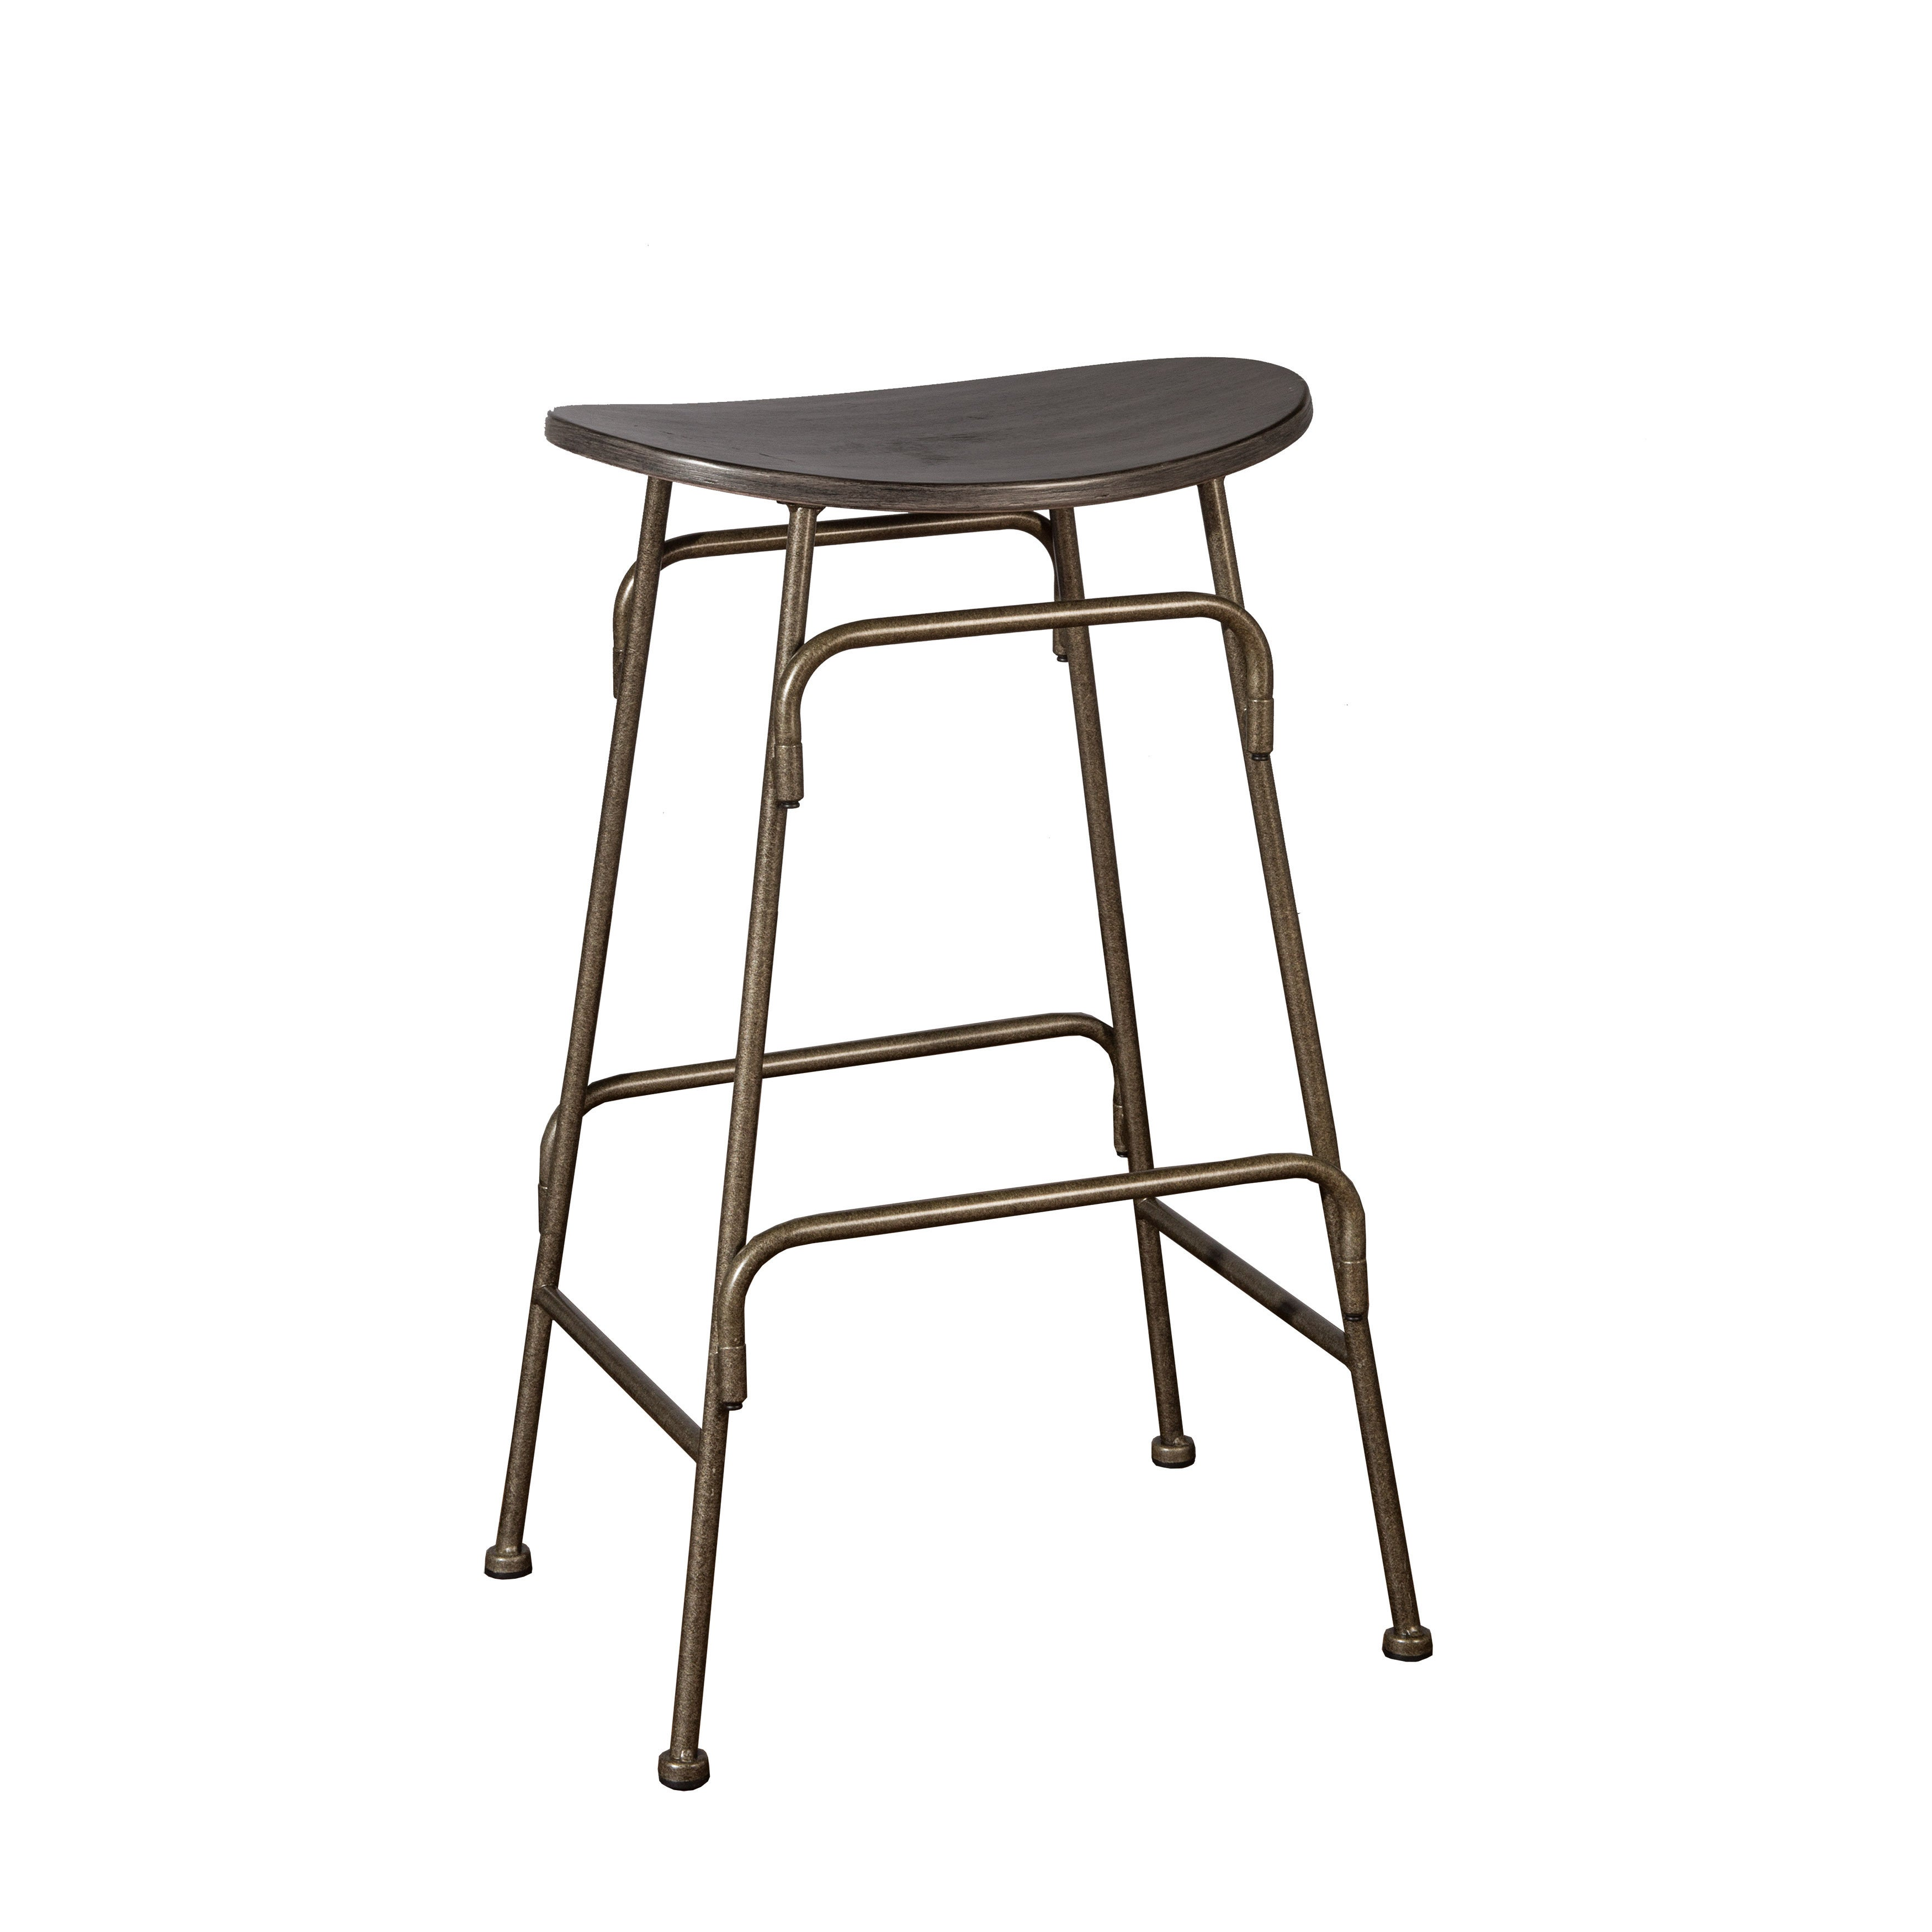 Shop carbon loft rutherford black bronze metal wood backless bar stool free shipping today overstock com 20306568